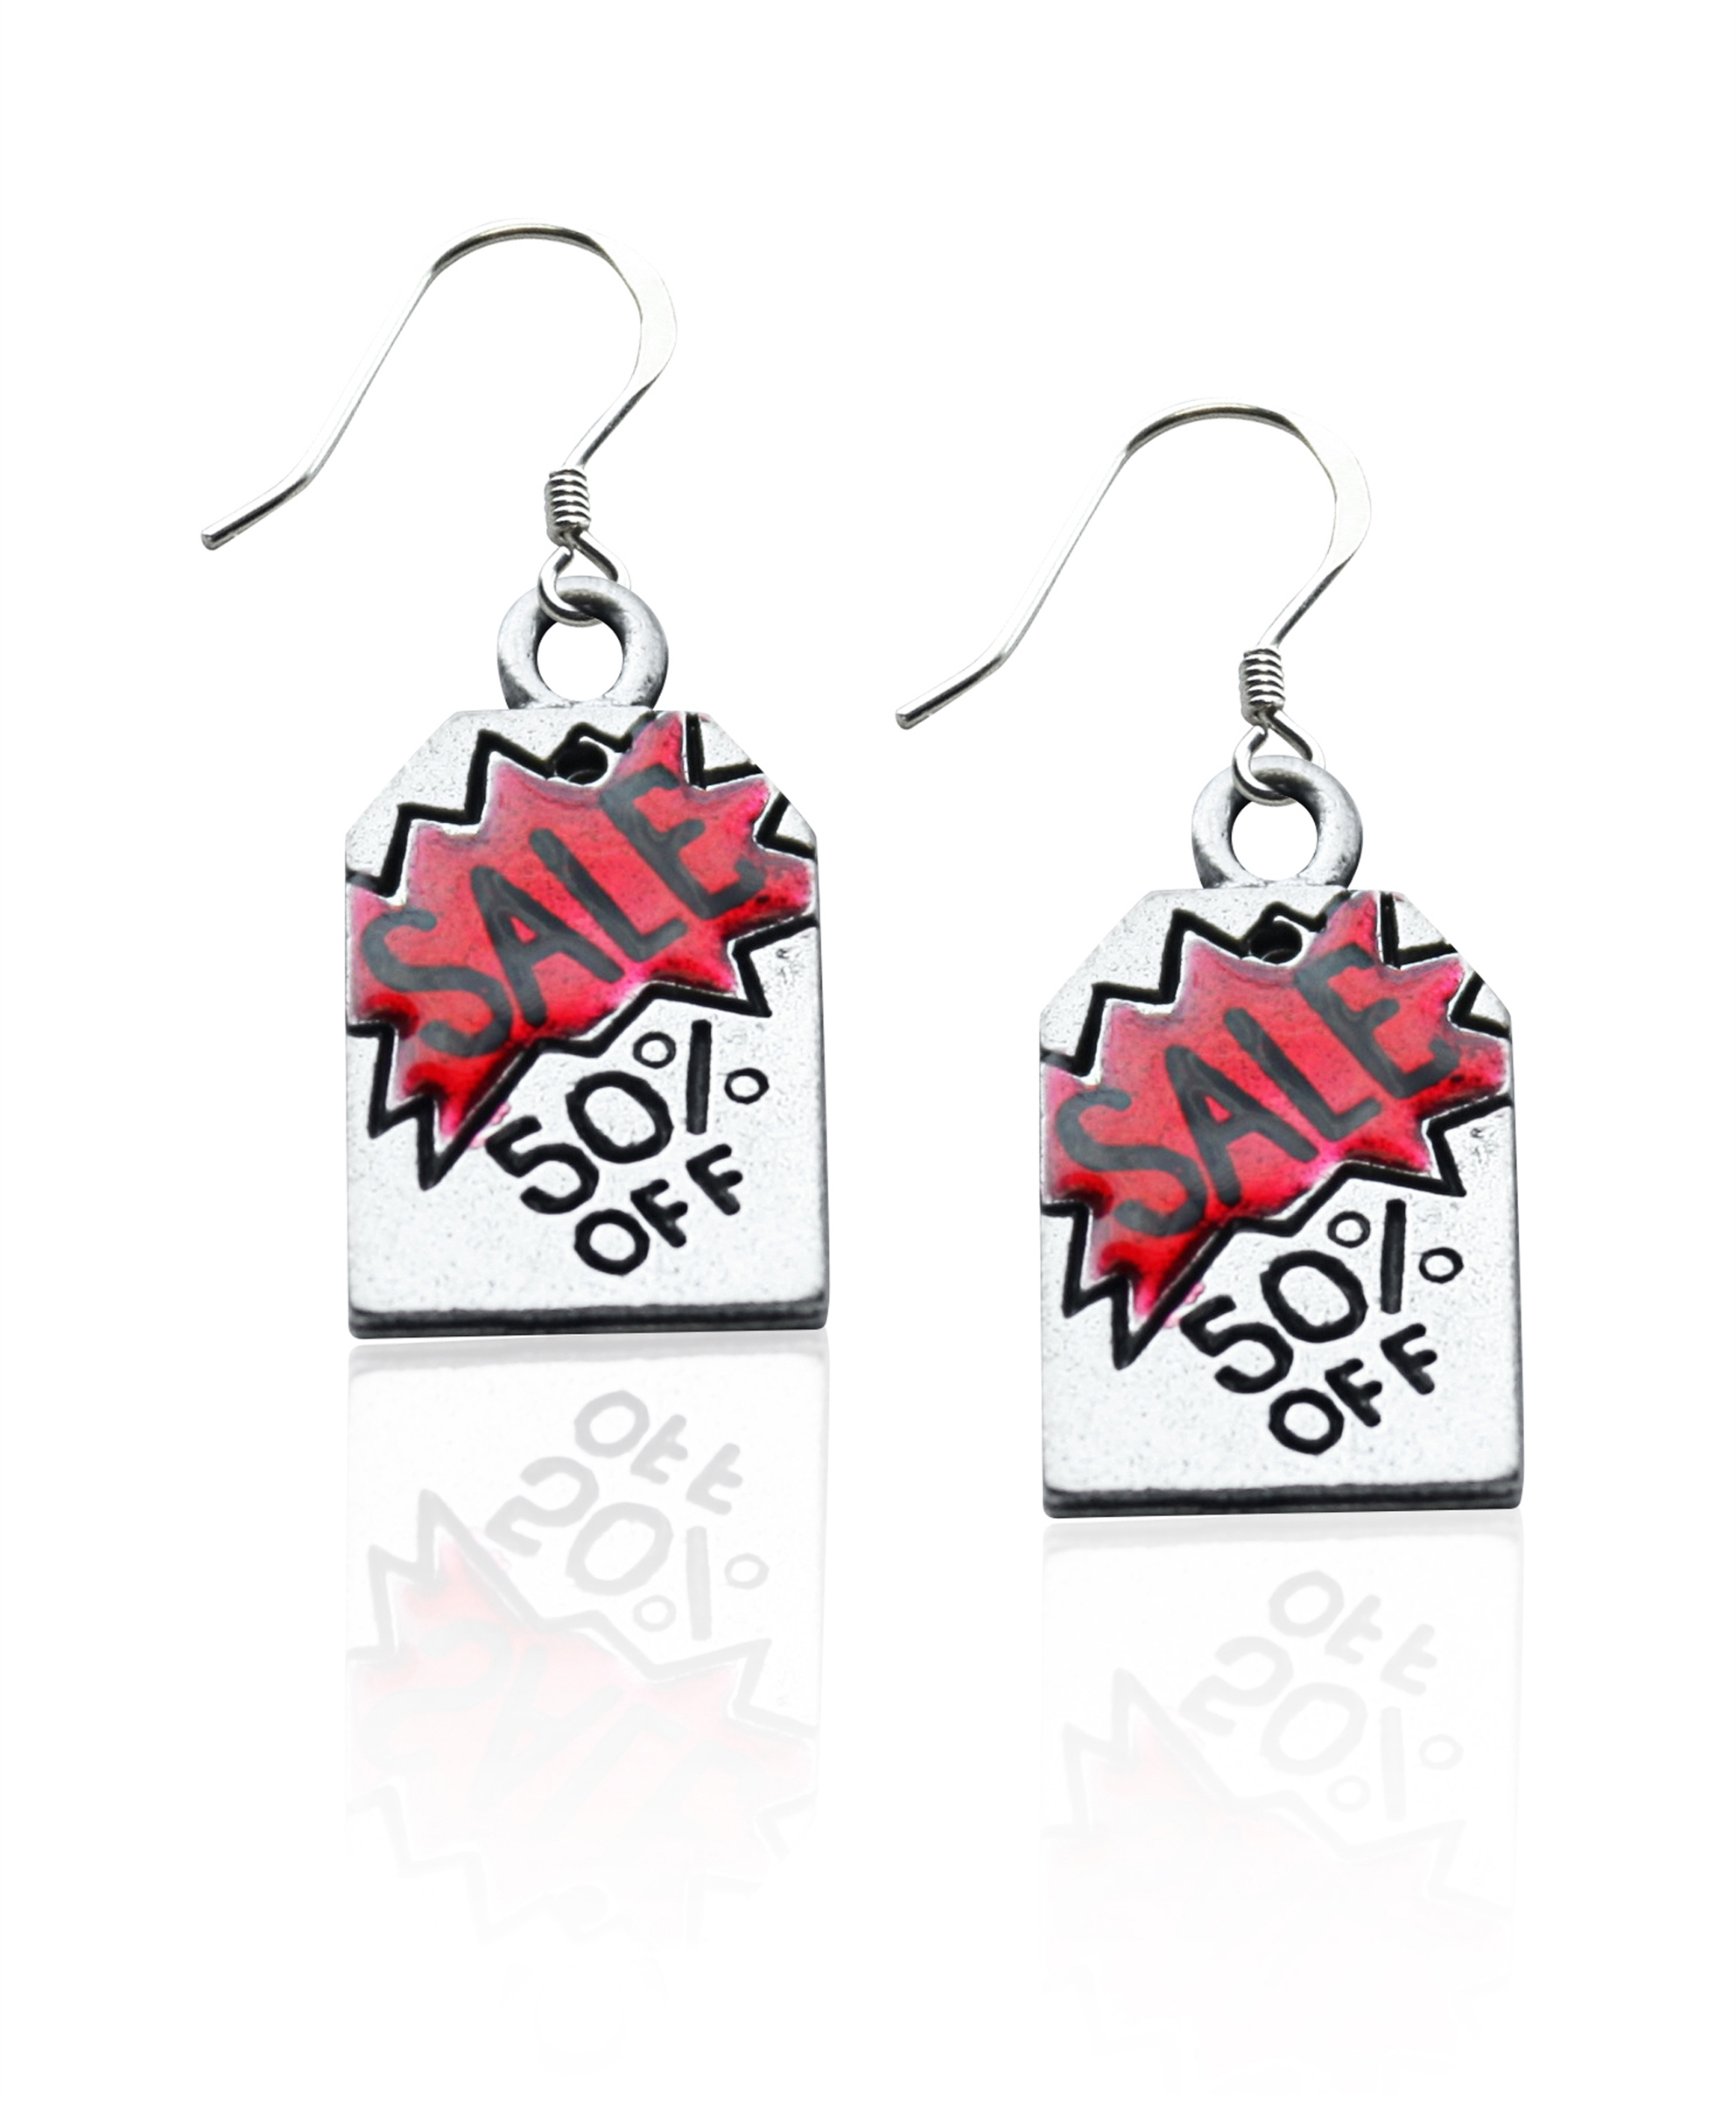 Image of 50% Off Sales Tag Charm Earrings in Silver